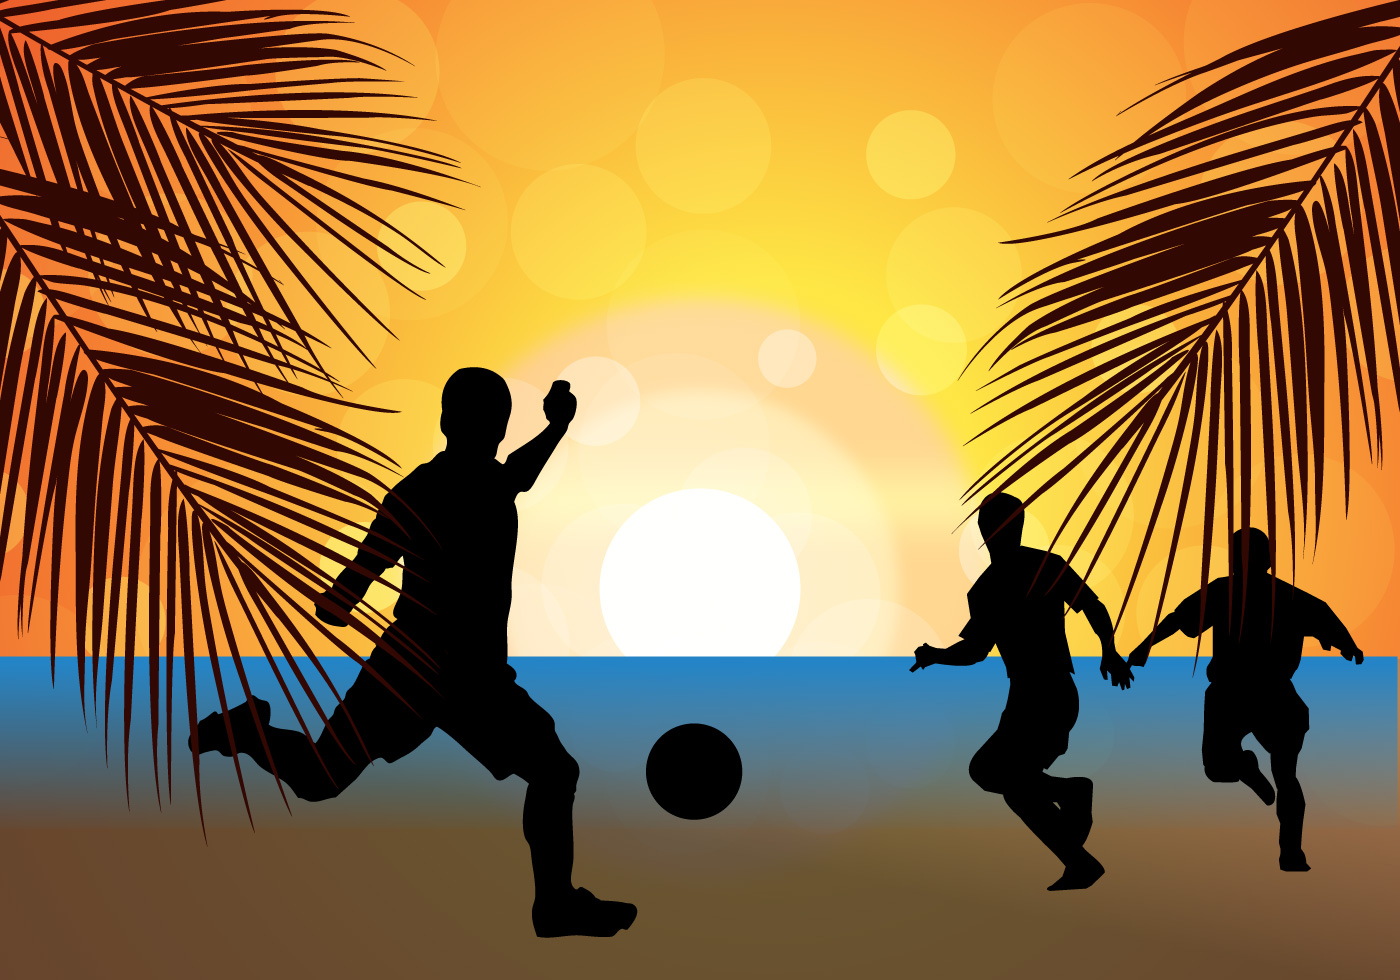 Girl By Beach Wallpaper Sqaure Football Silhouette Free Vector Art 8626 Free Downloads